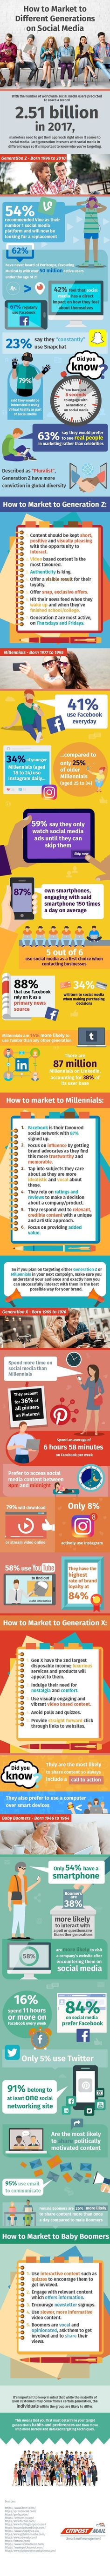 How to Market Your Business to Different Generations on Social Media [Infographic] http://itz-my.com